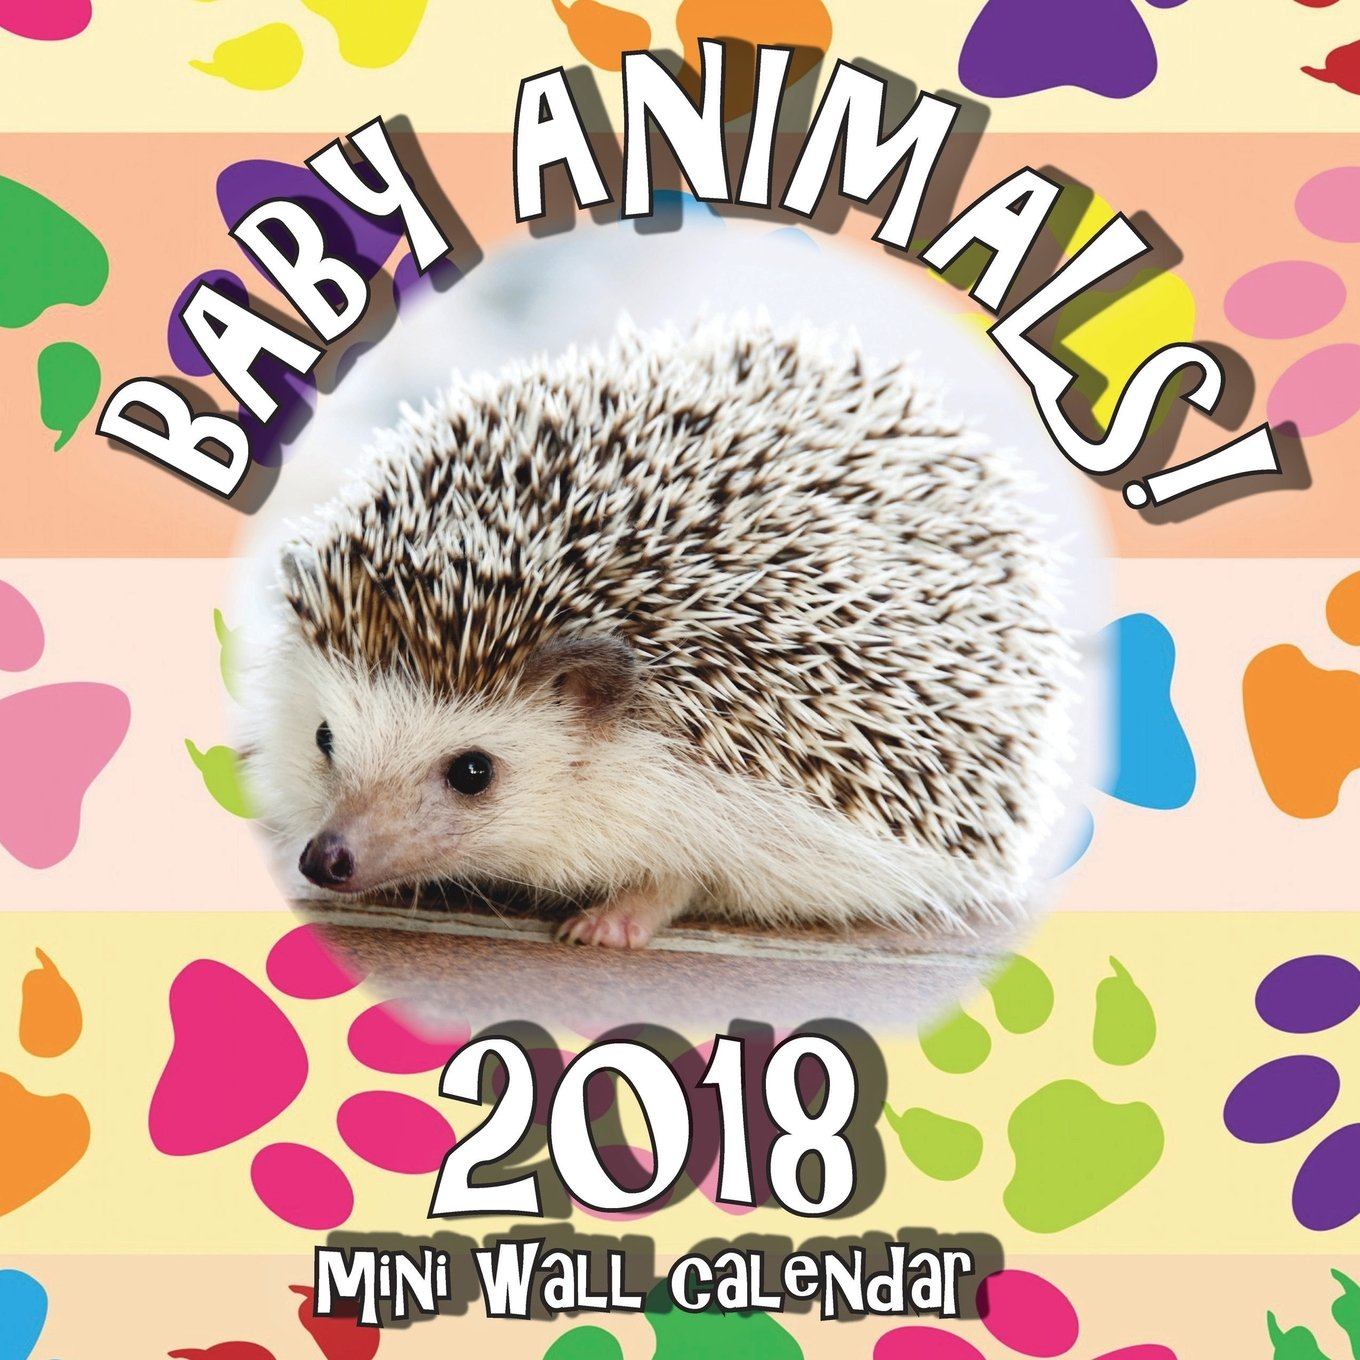 Baby Animals! 2018 Mini Wall Calendar